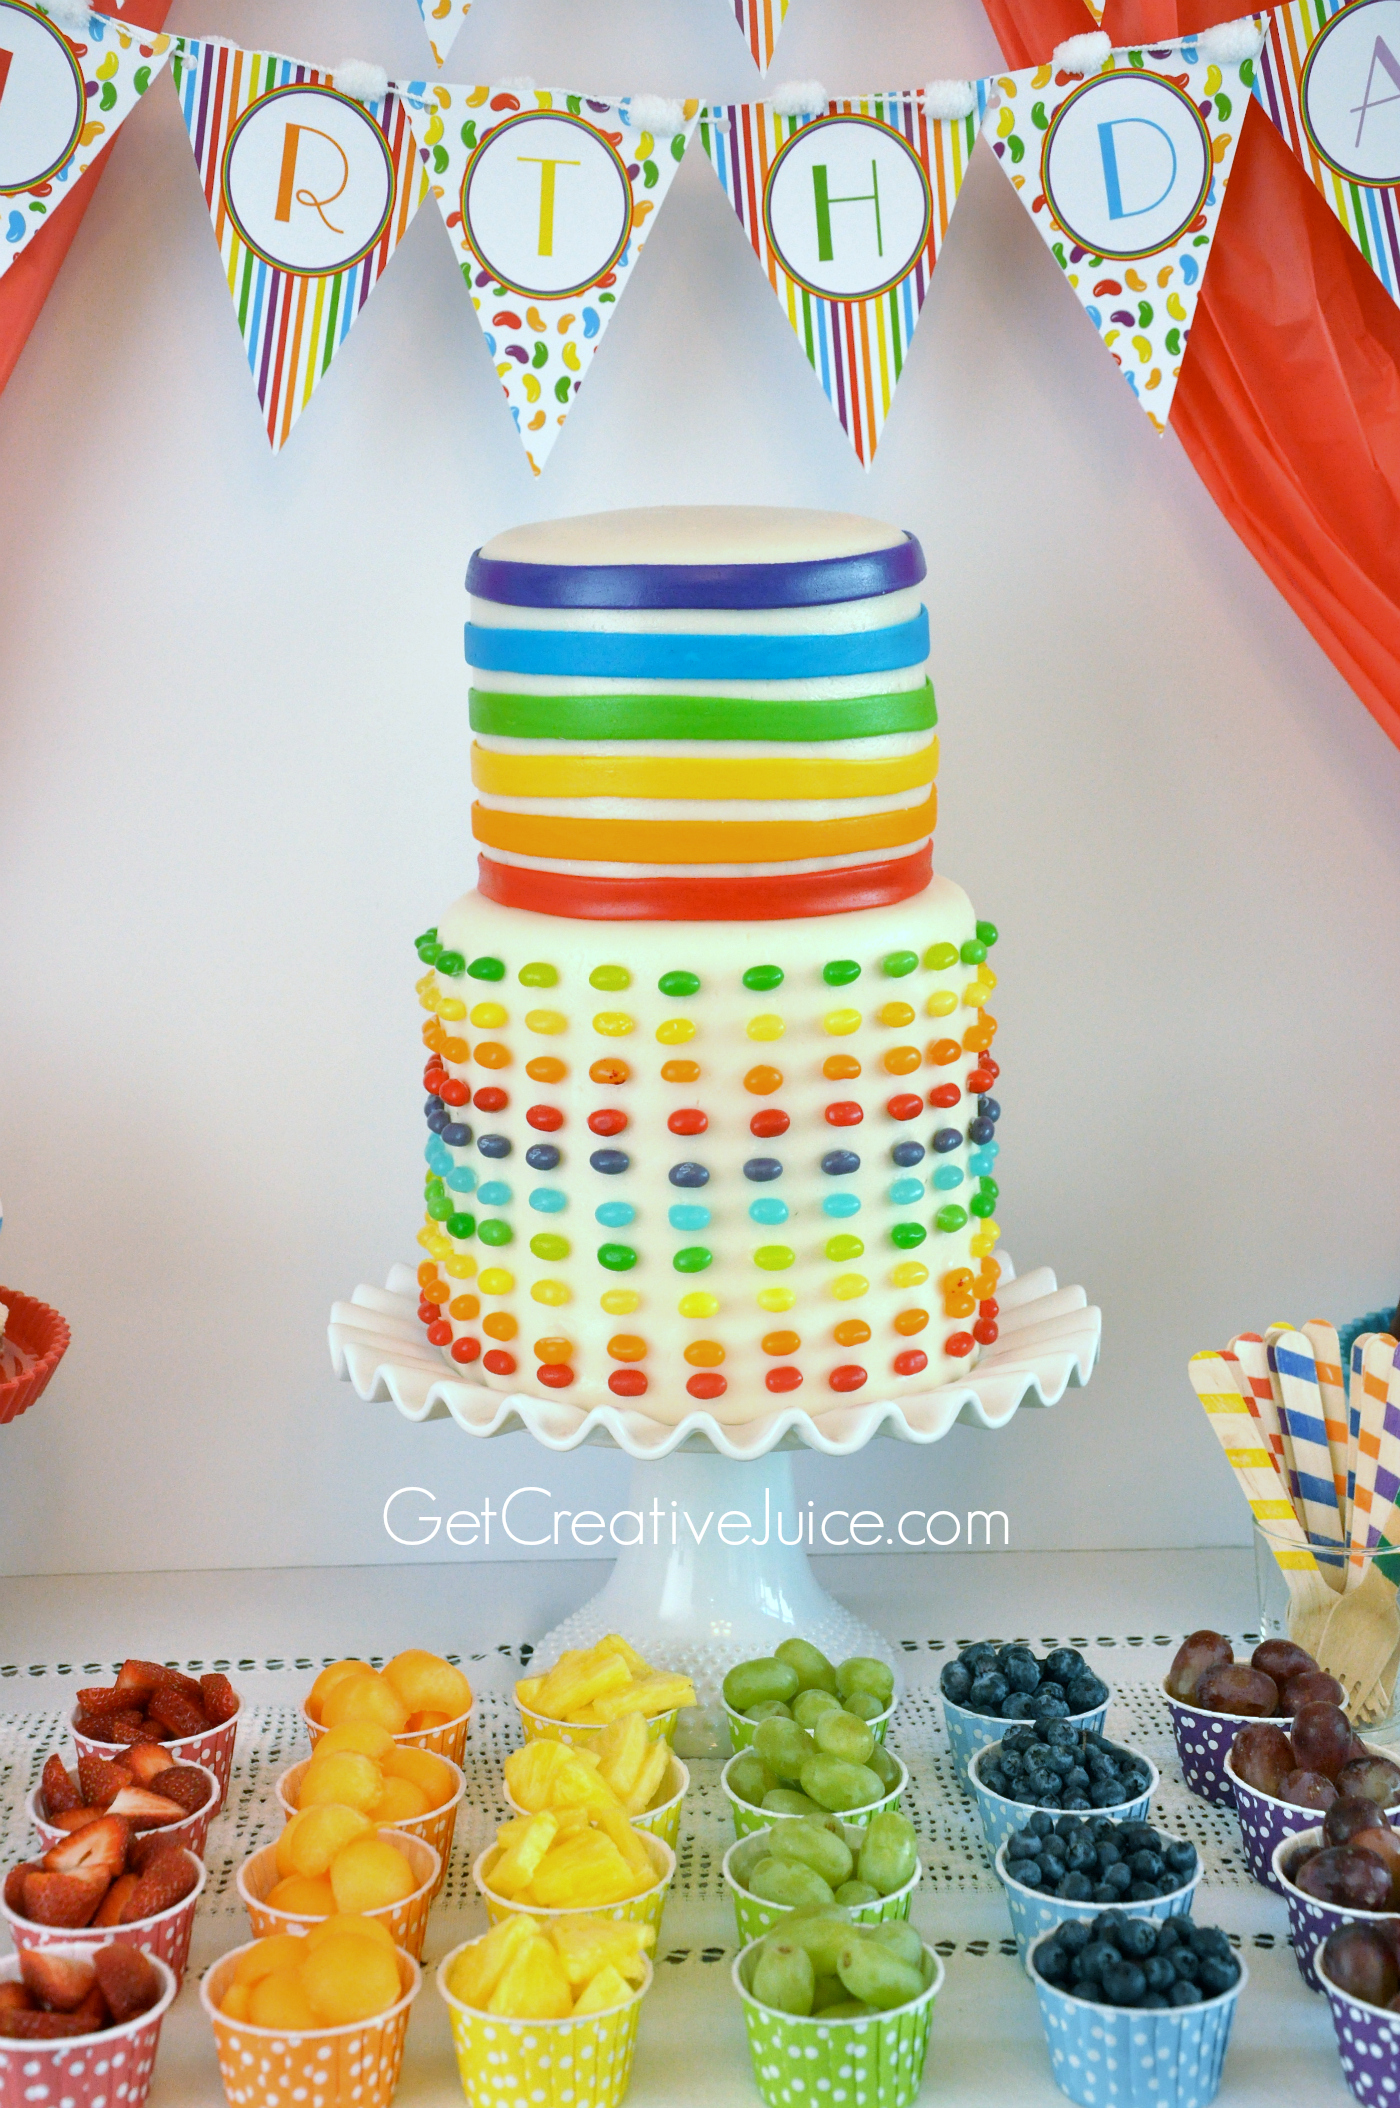 Birthday Cake Images Rainbow : Out-of-the-box Birthday Cakes - Creative Juice